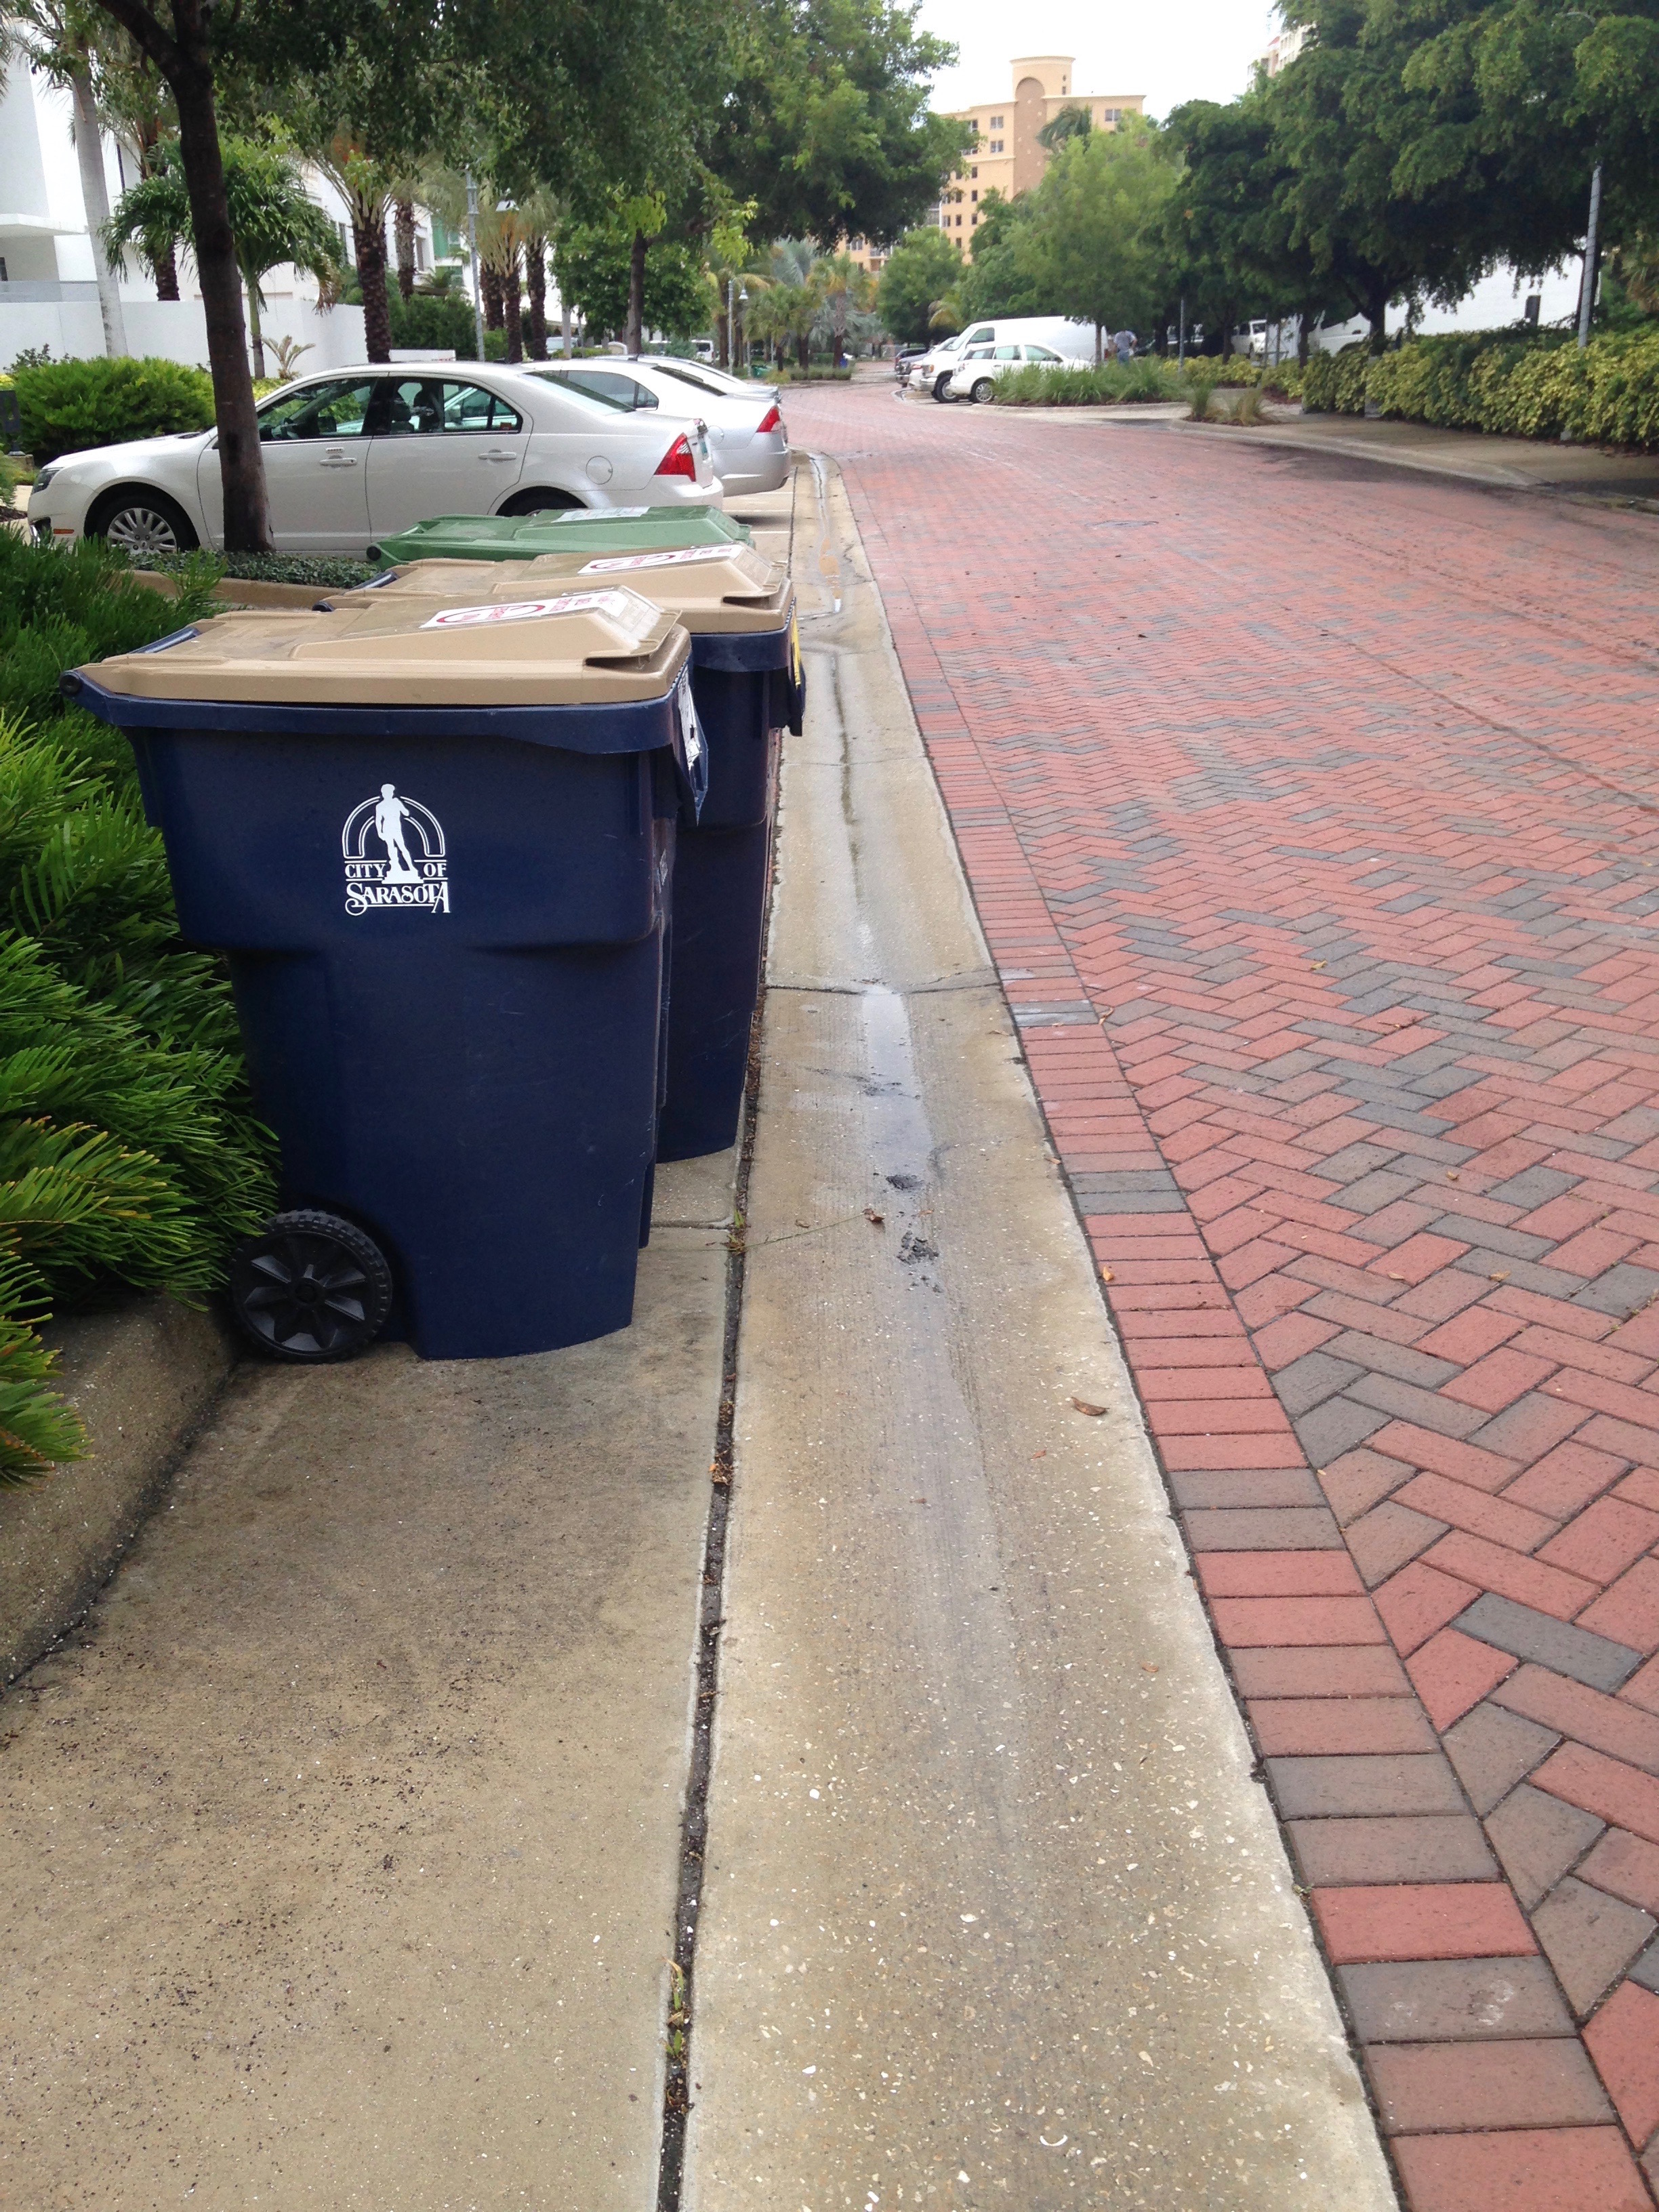 Here the receptacles are outside the V-drain -